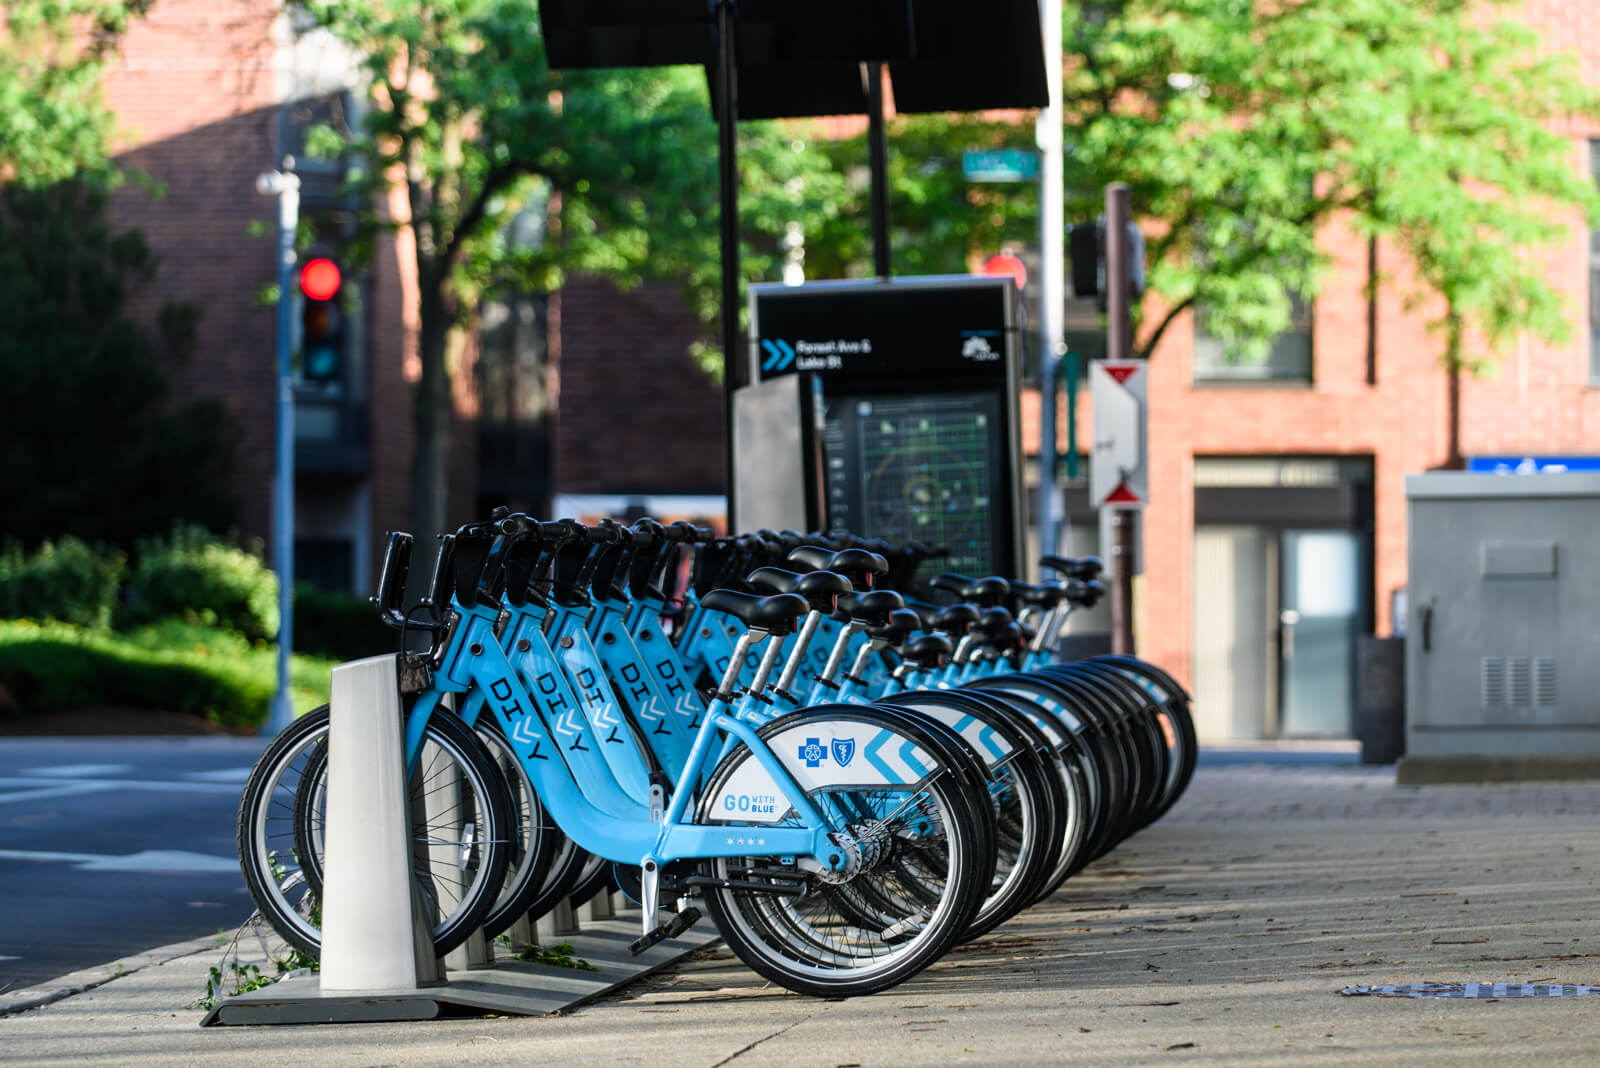 Divvy bikes in Downtown Oak Park, IL